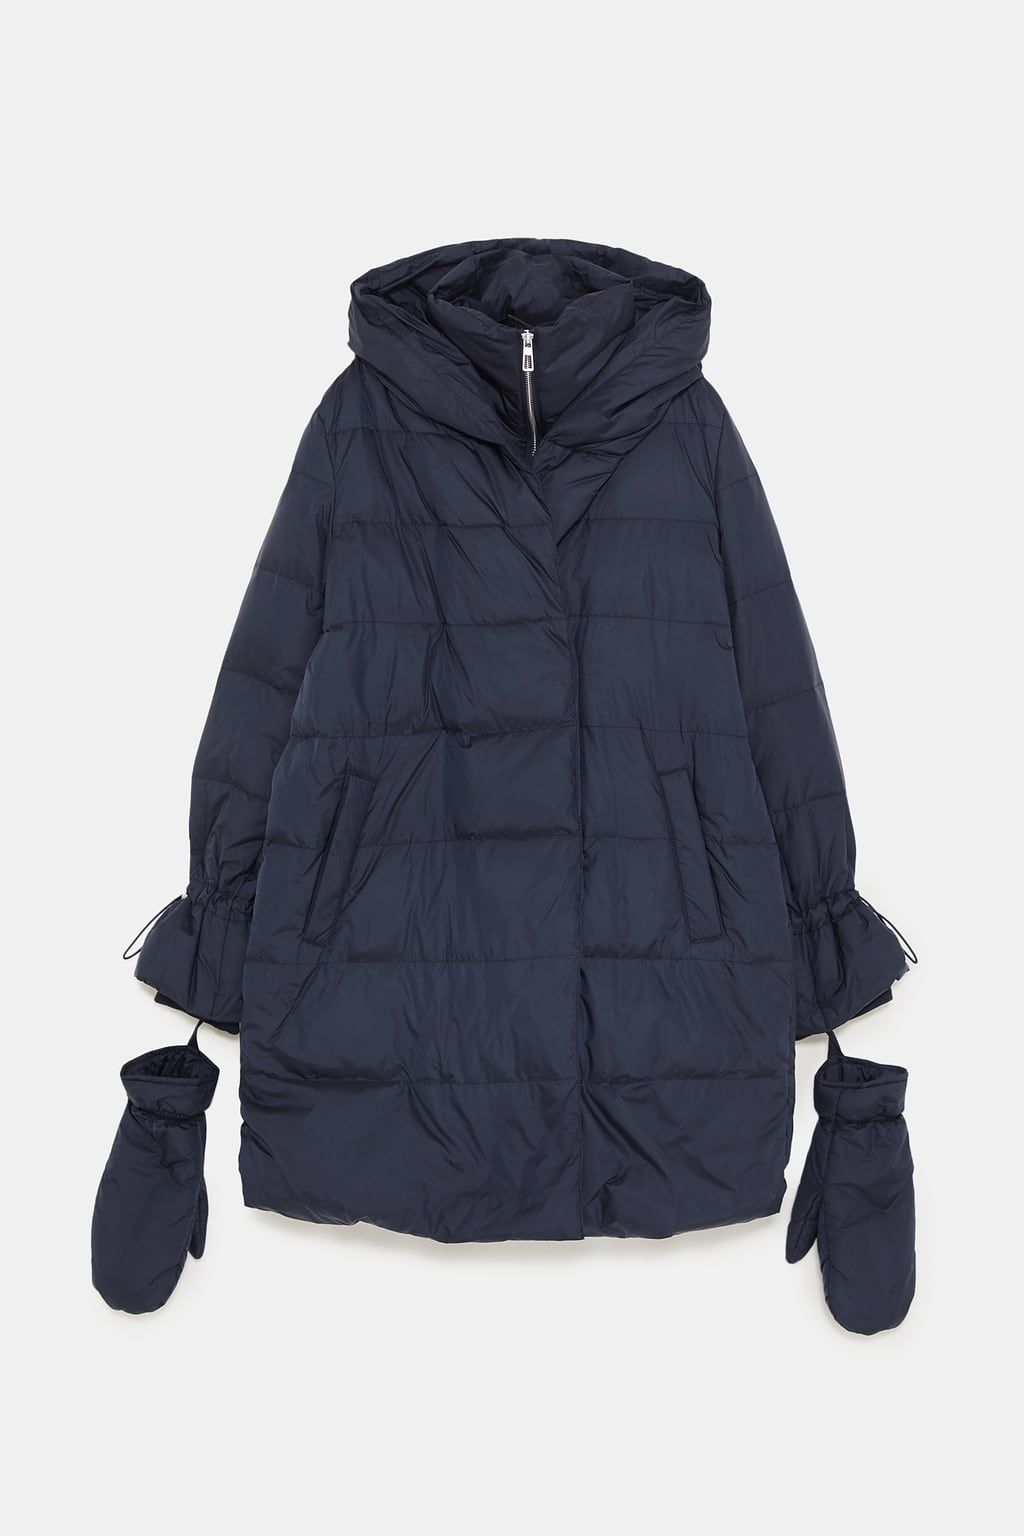 386da44f Image 9 of DOWN COAT WITH WRAP COLLAR from Zara | Outerwear pj ...